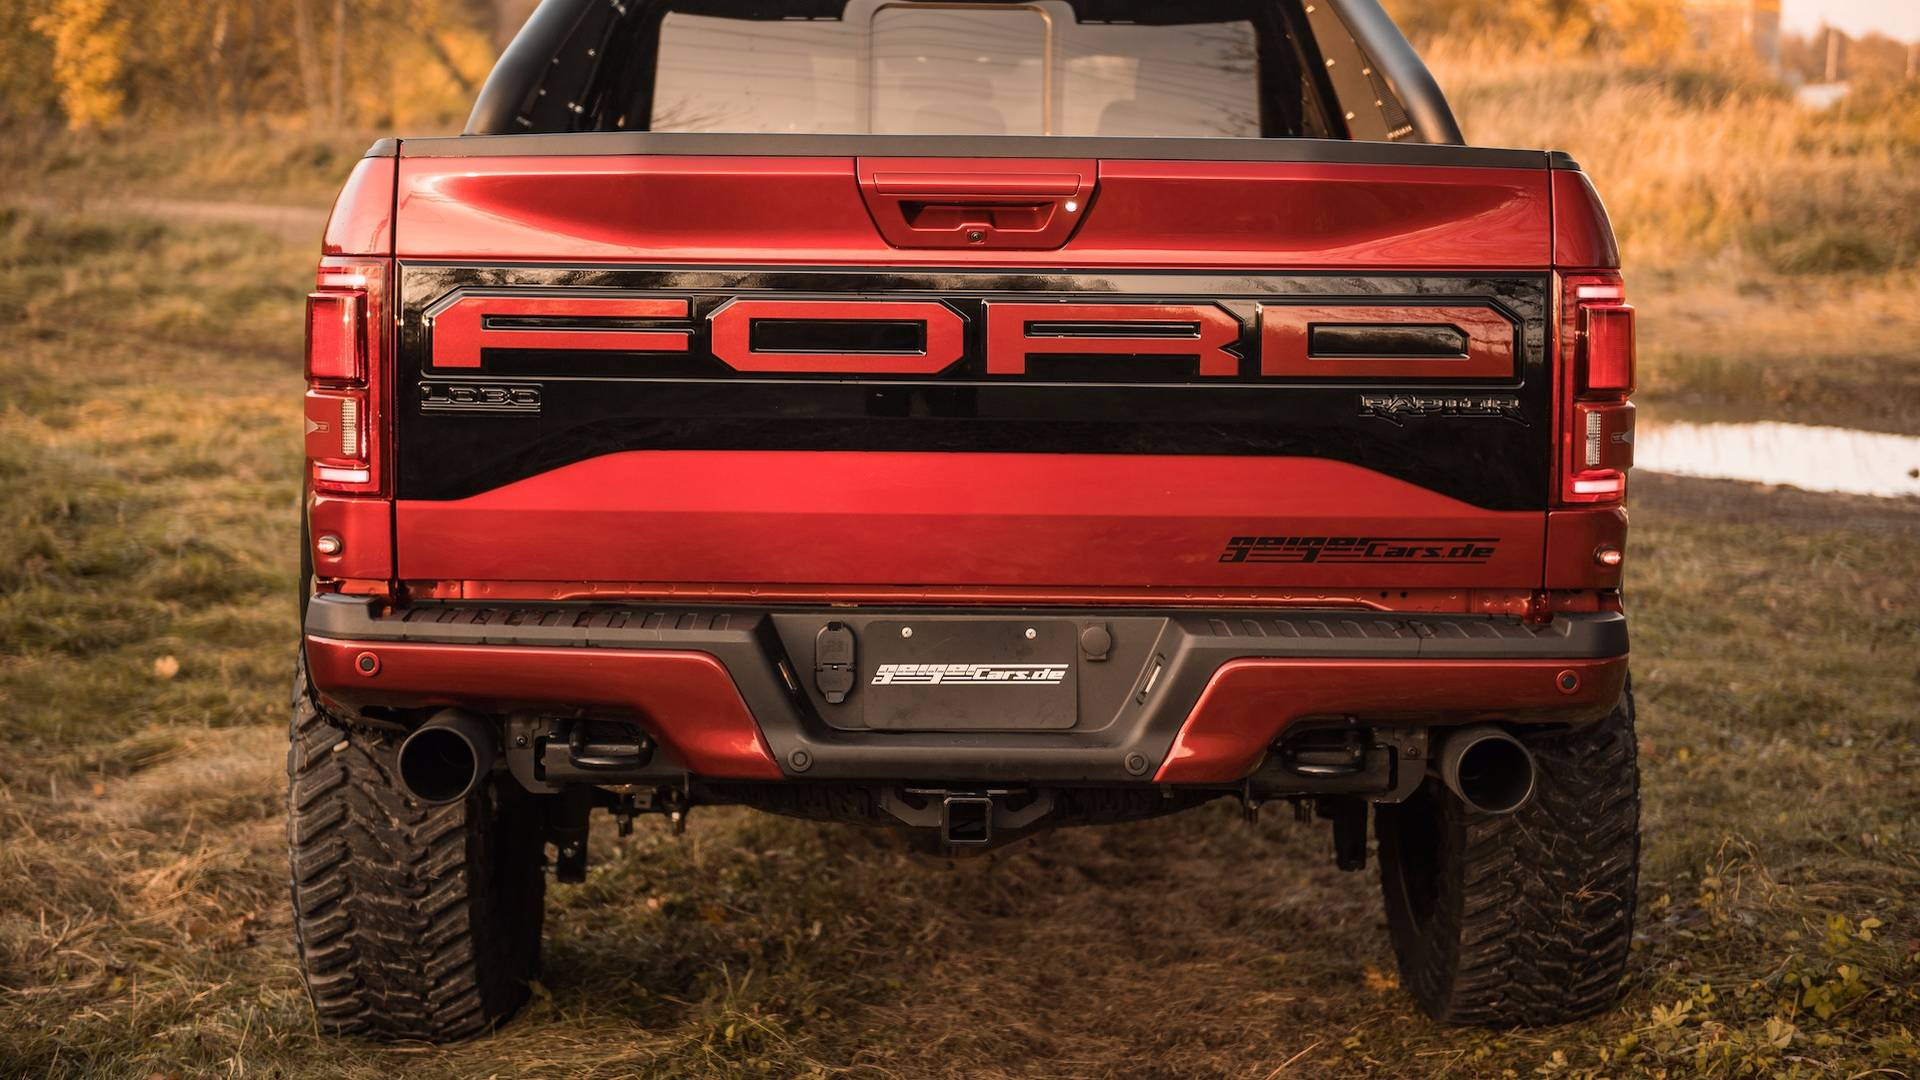 Ford F-150 Raptor Gets The Geiger Cars Treatment, Tuned To